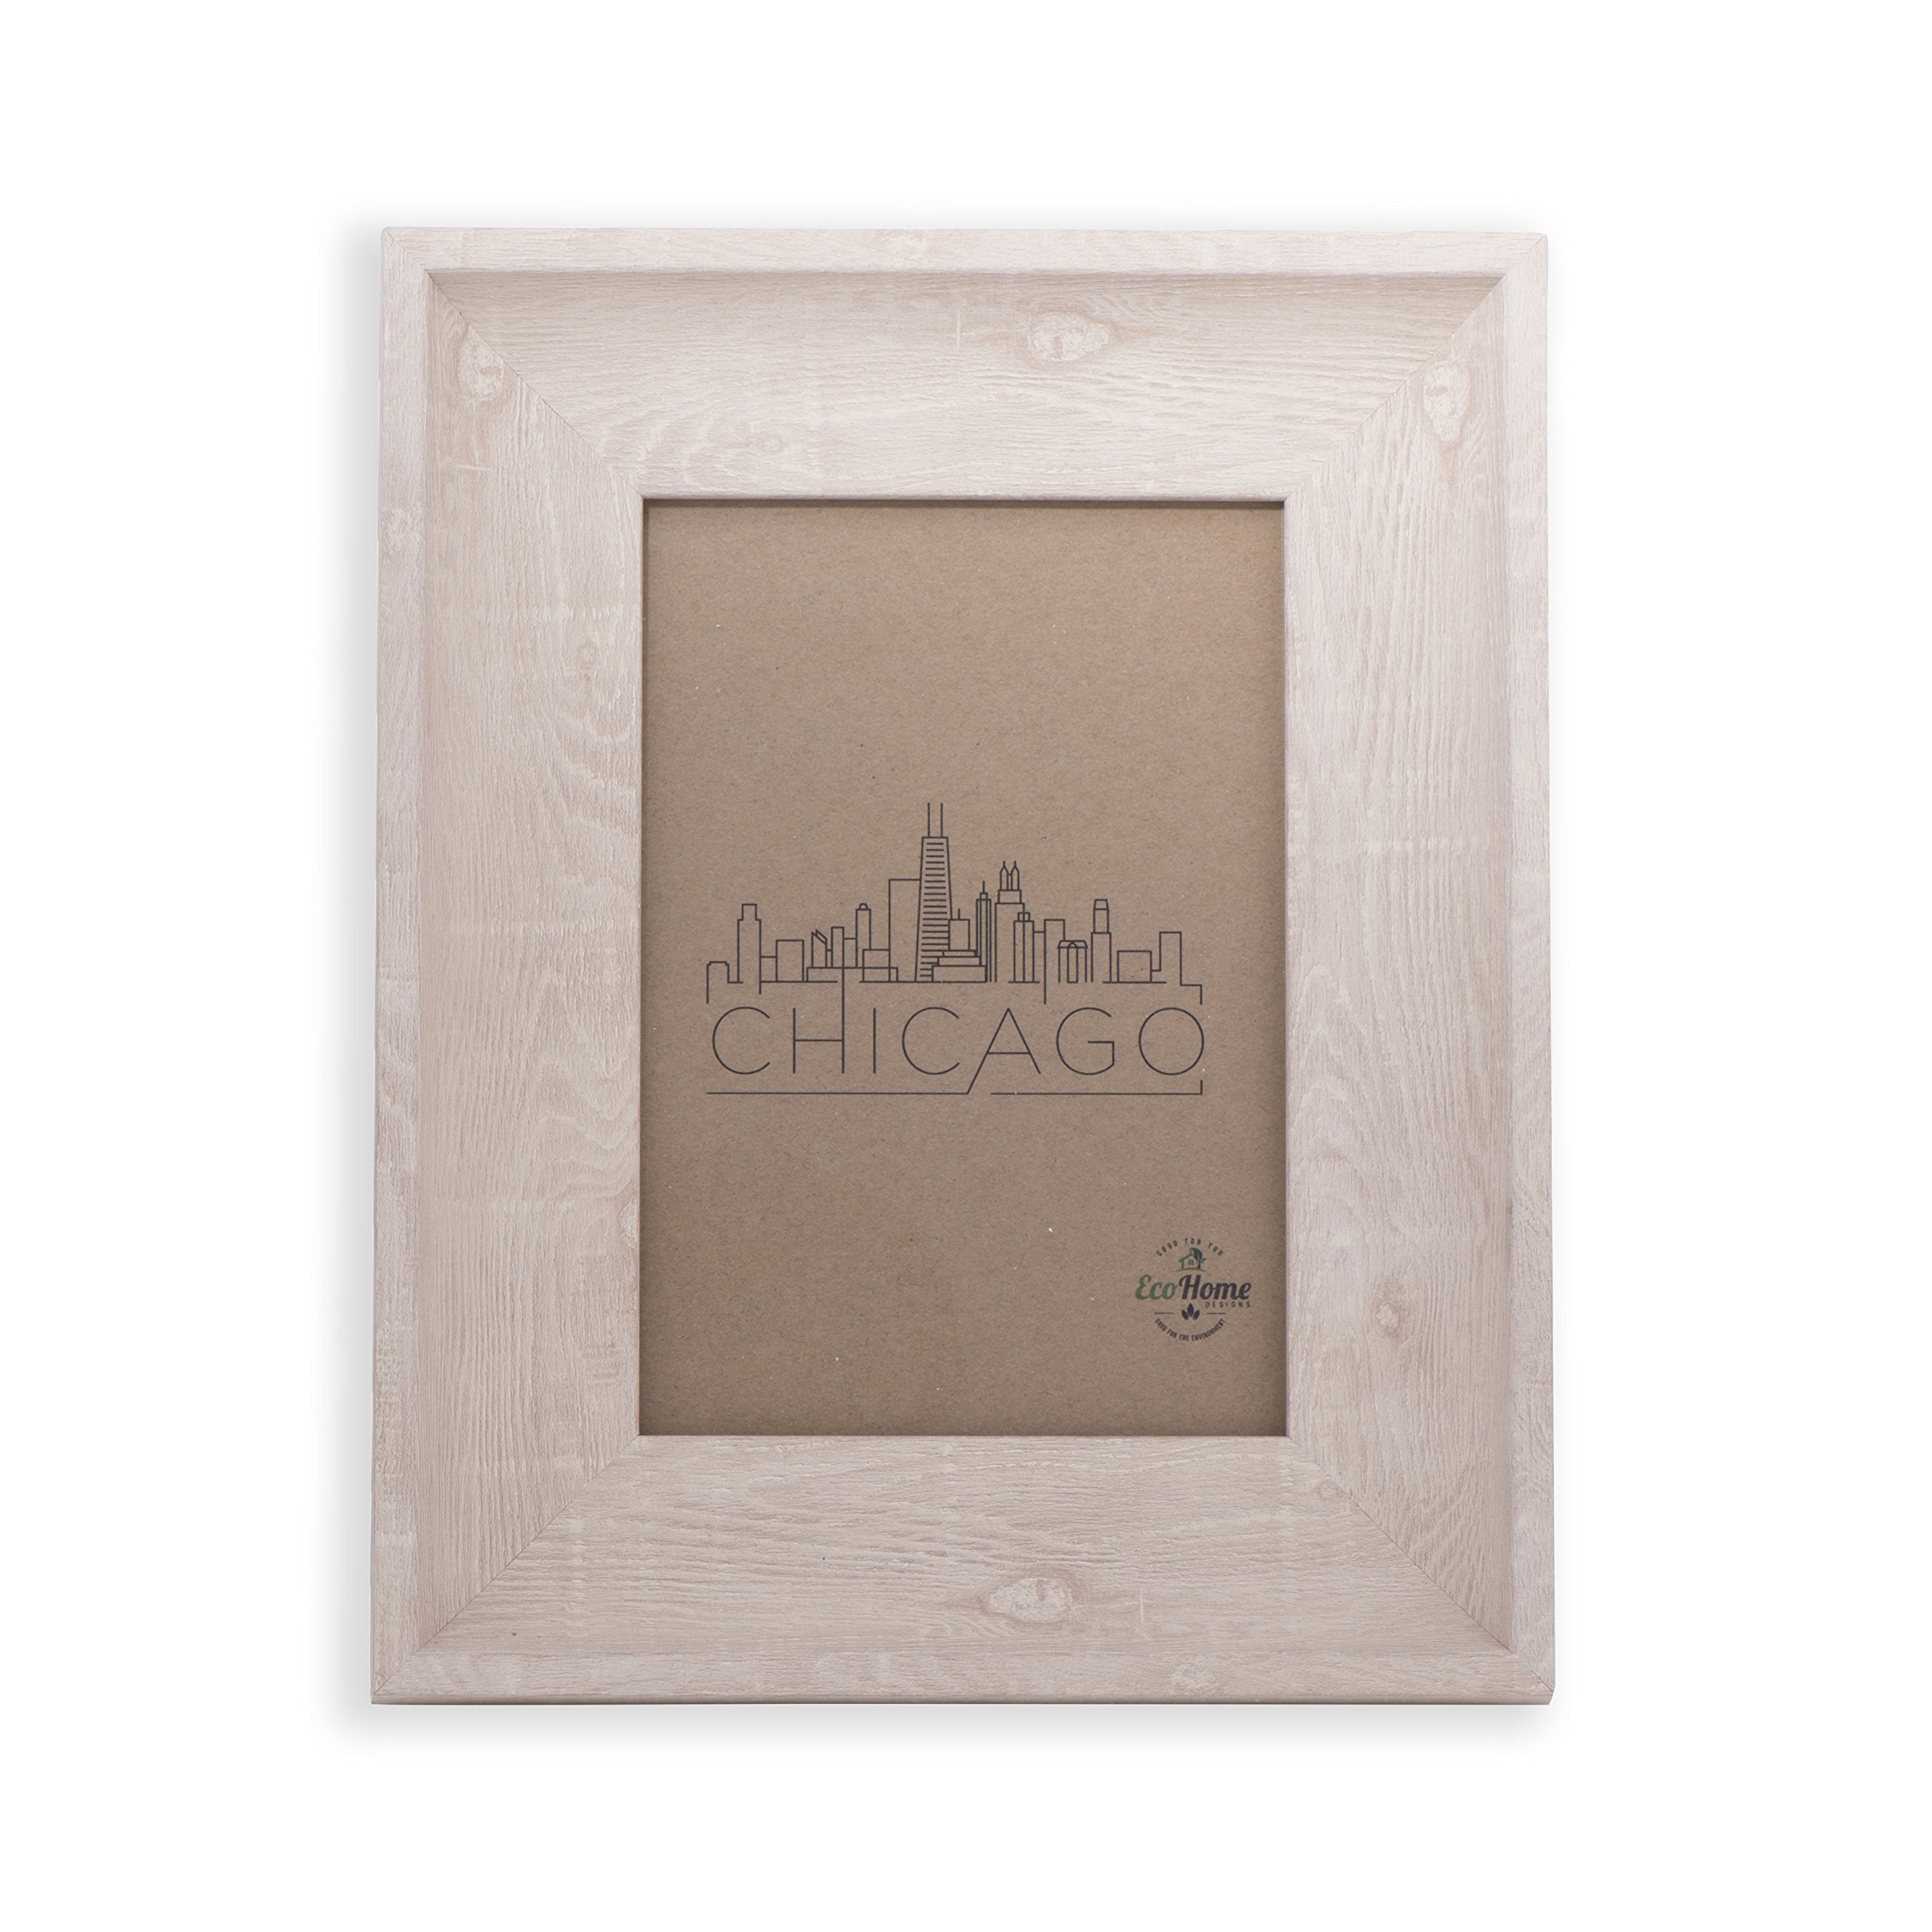 EcoHome 5x7 Photo Frame - Hang or Desktop Photo Display, Natural Wood Finish, for Home or Office